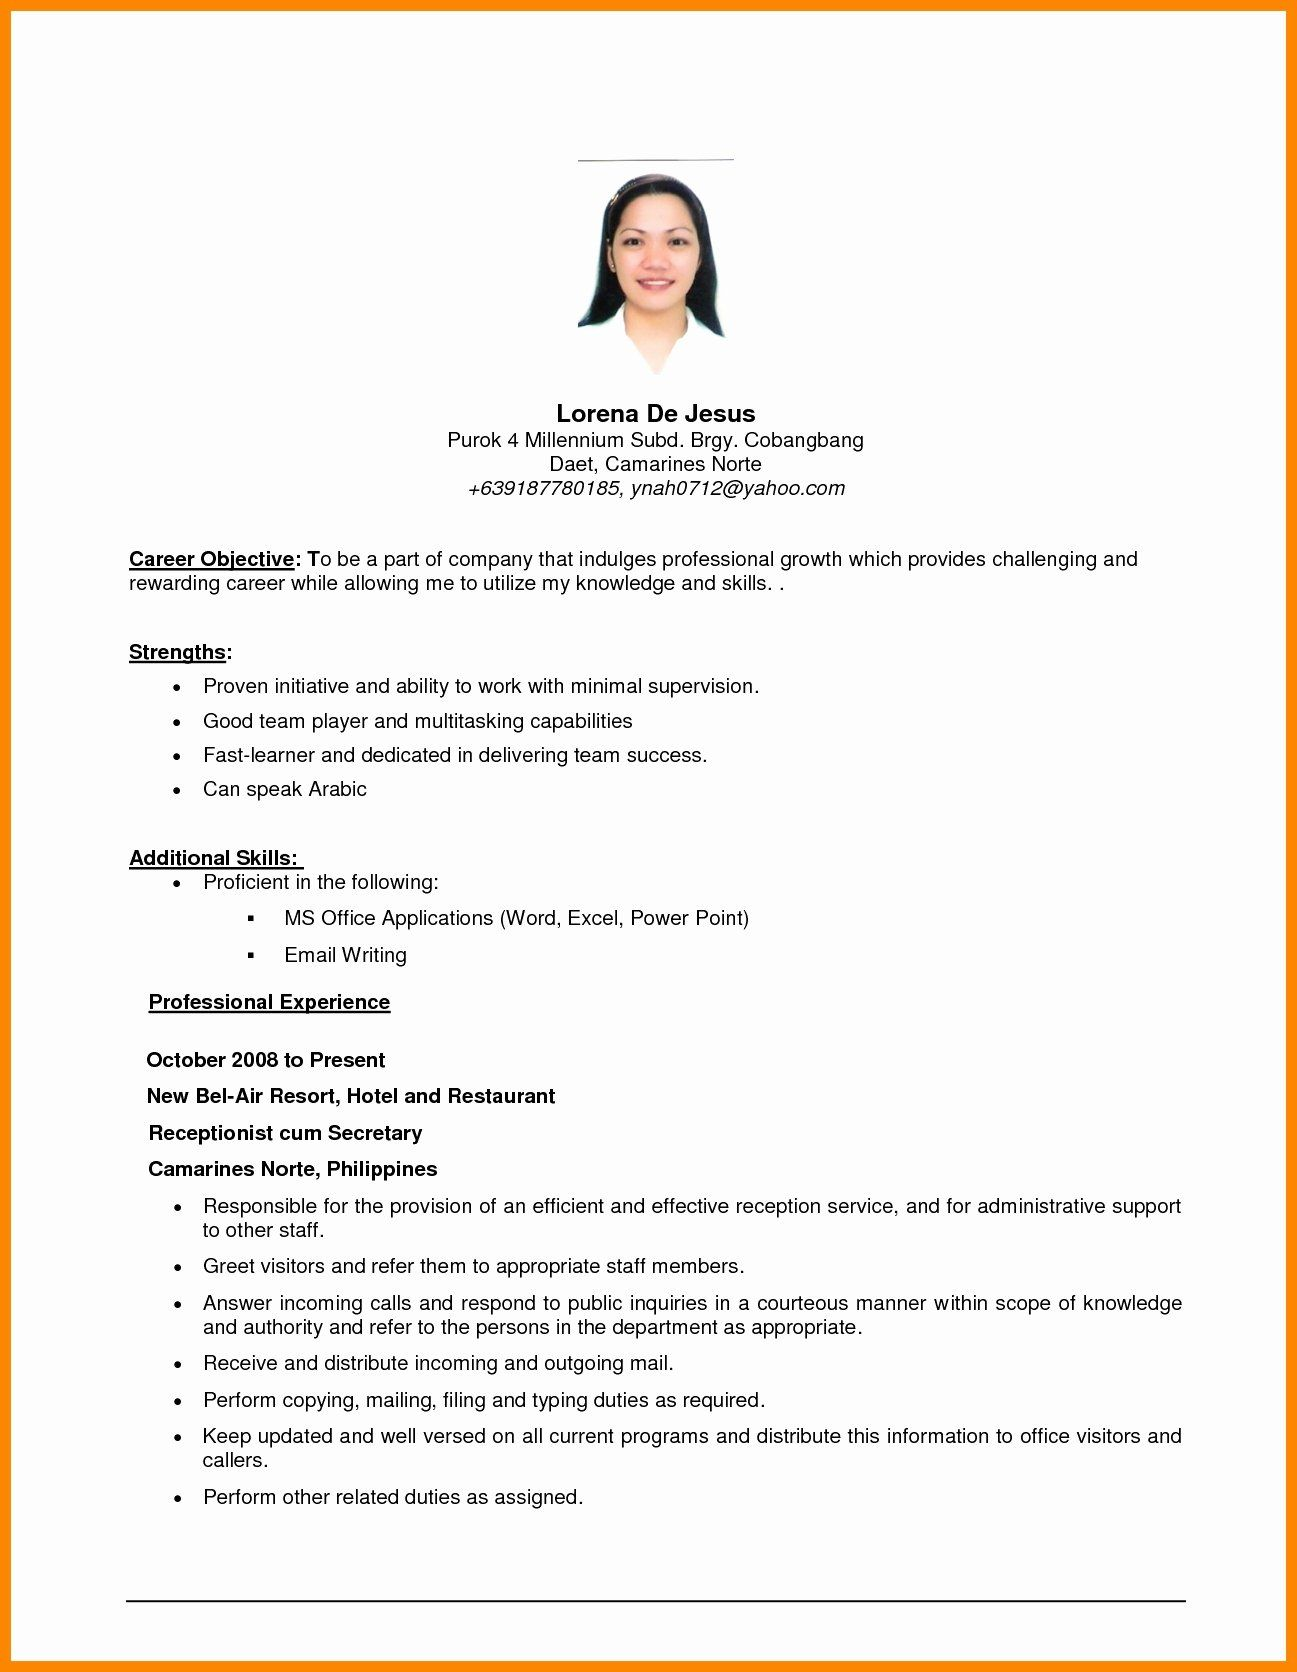 generic objective for resume inspirational general examples career objectives job Resume General Resume Objectives For Students